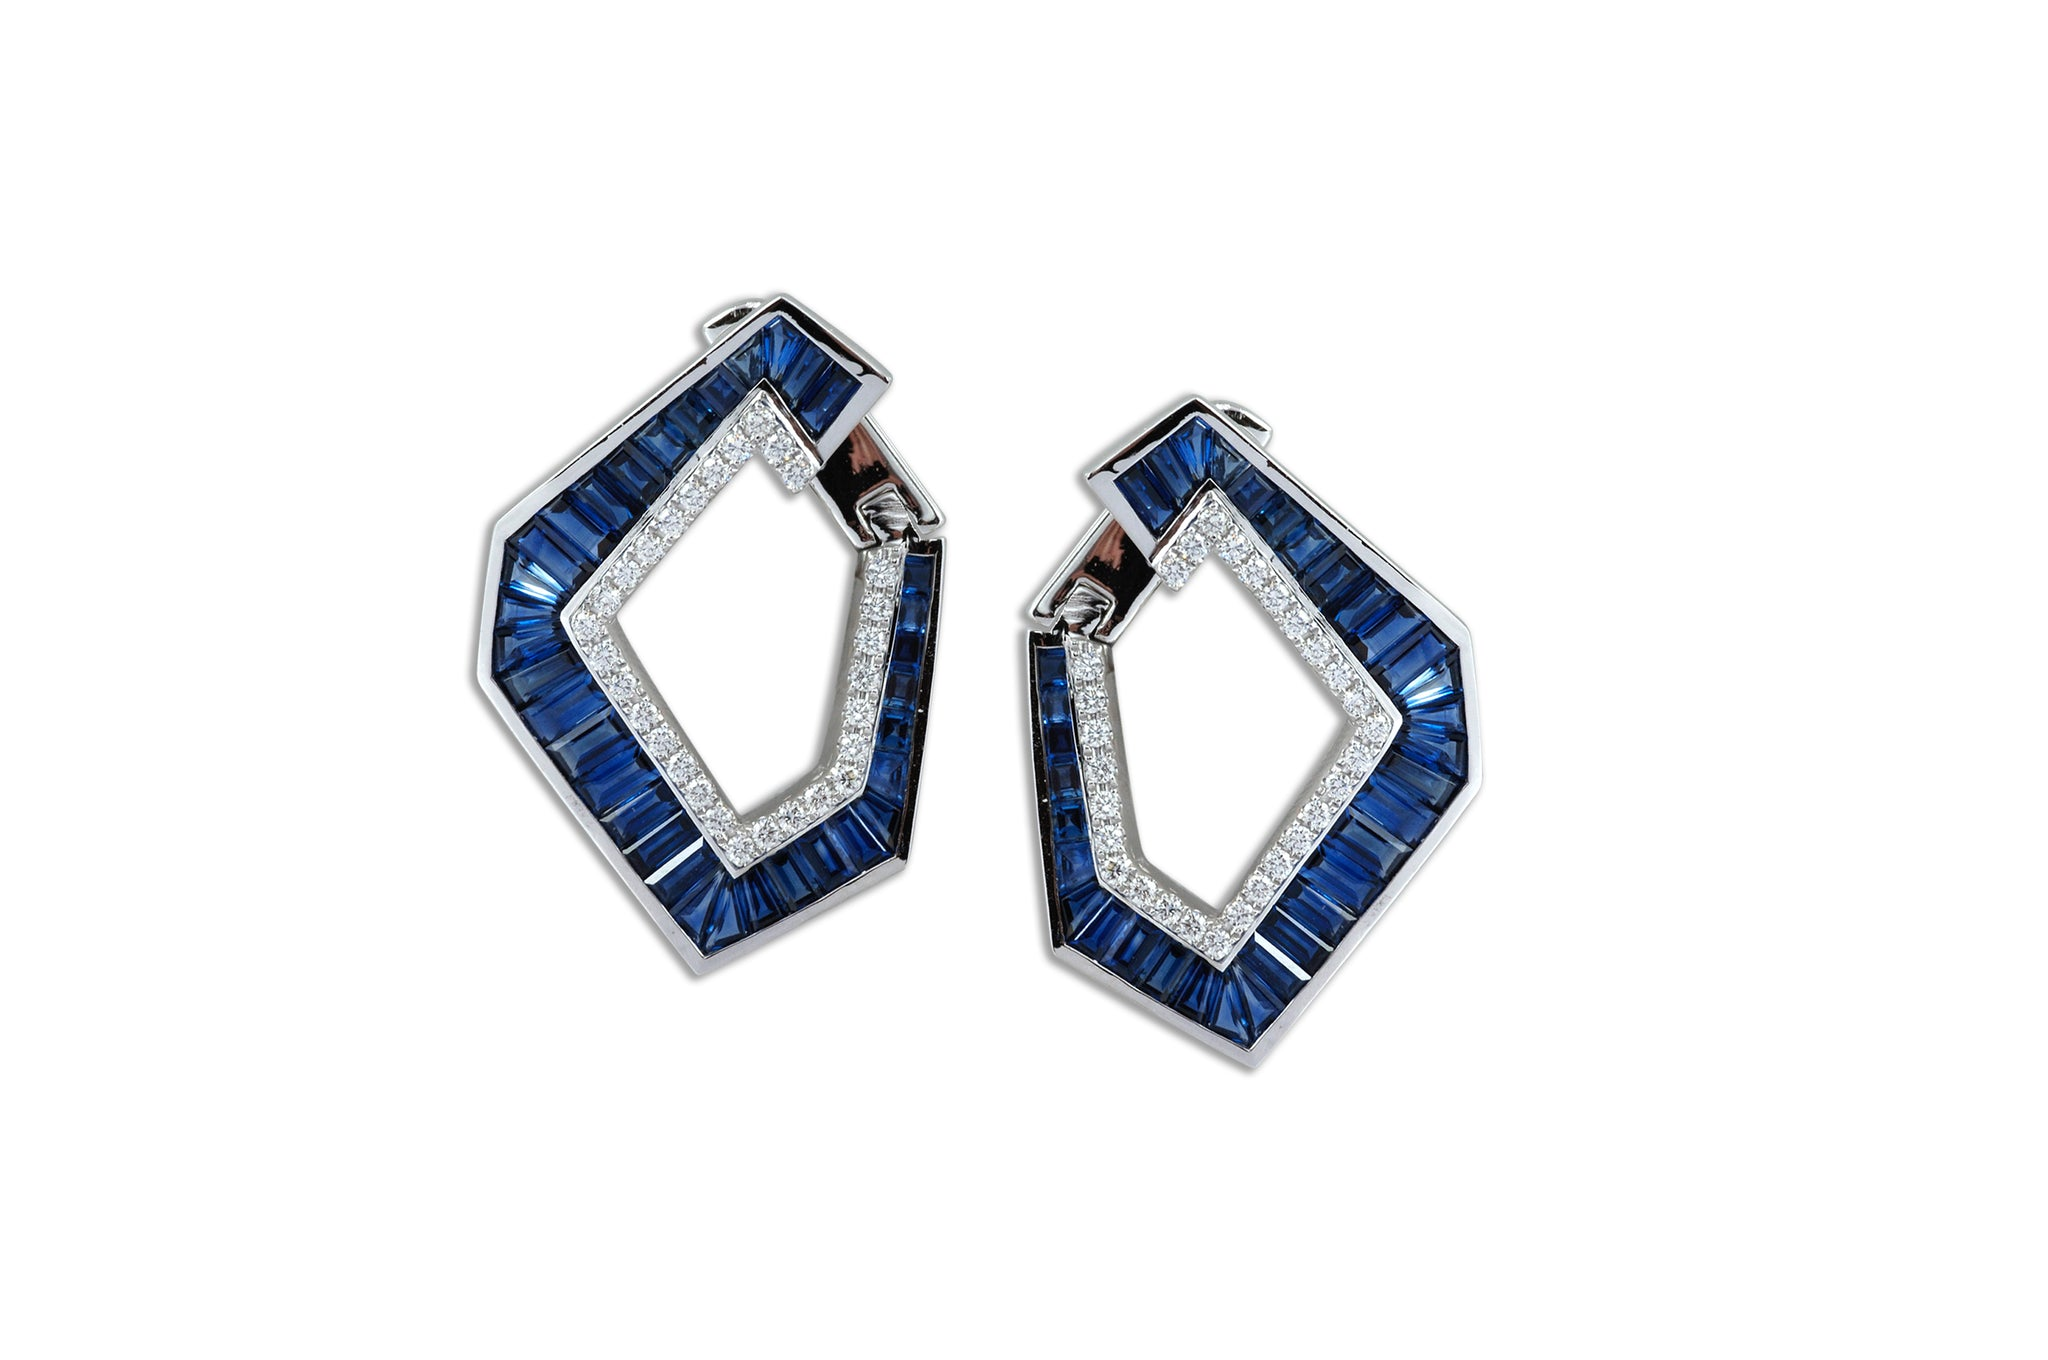 Origami Link no.5 Blue Sapphire & Diamond Earrings (Grande)